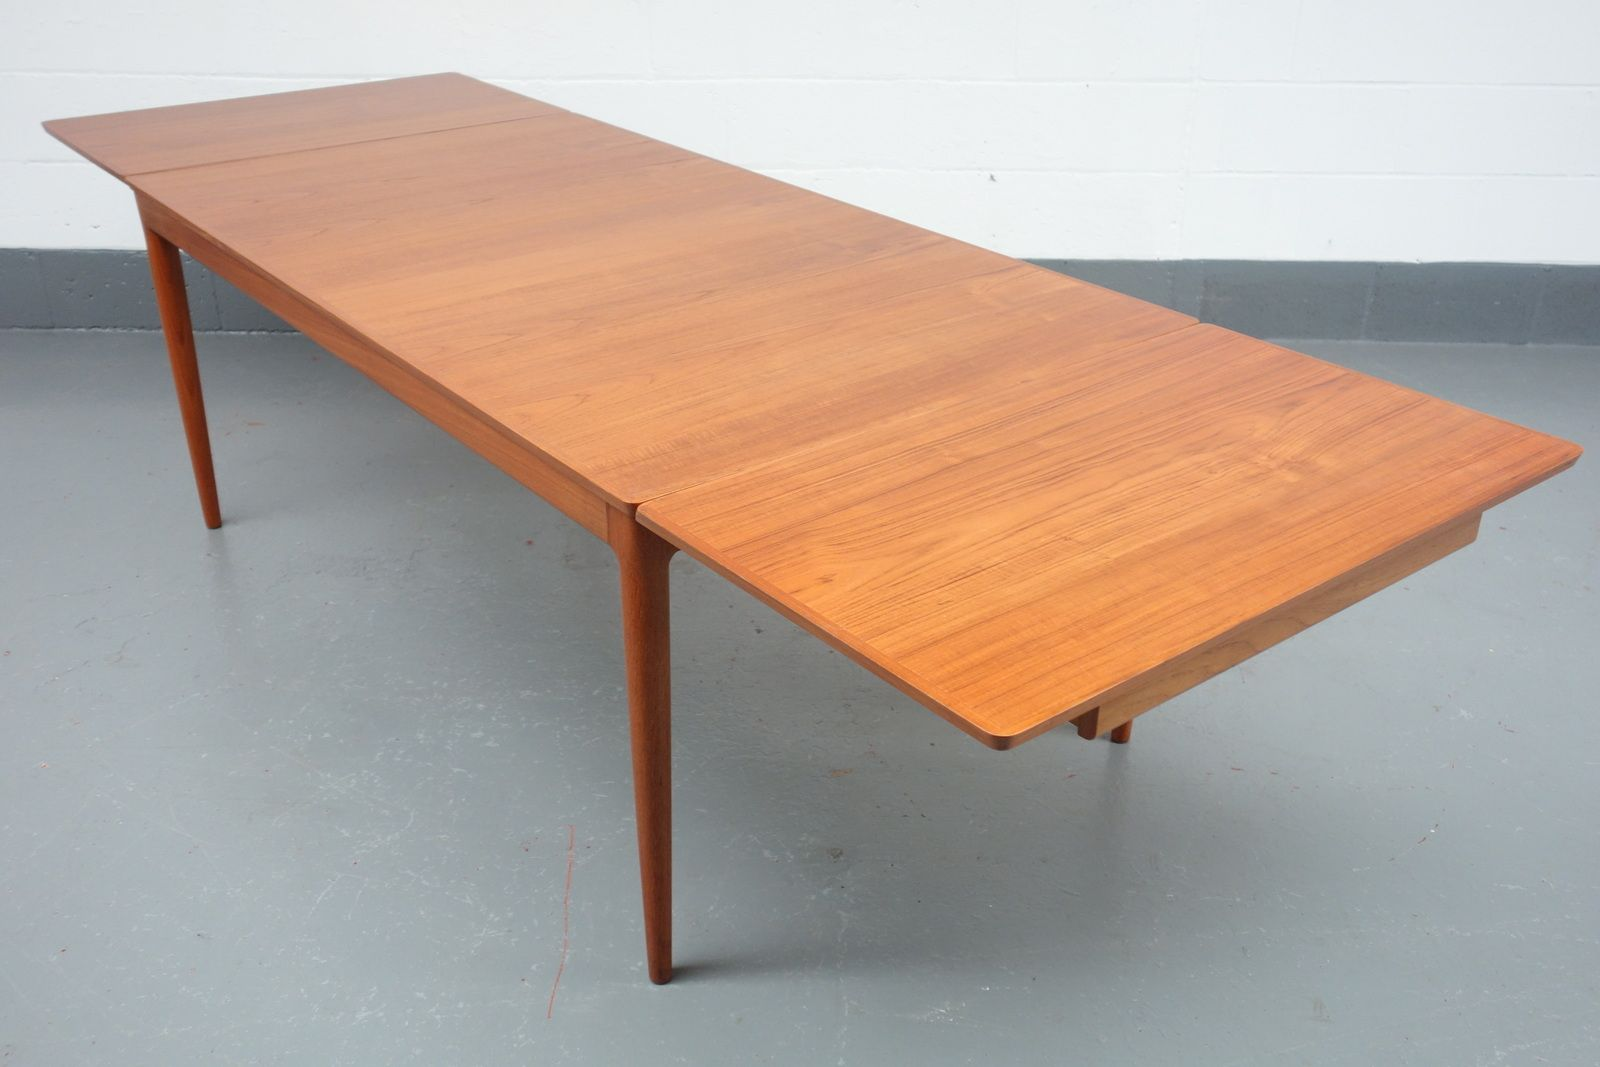 Danish Mid Century Teak Extendable Dining Table By Johannes Andersen Dining Table Midcentury Modern Dining Table Rectangle Dining Table